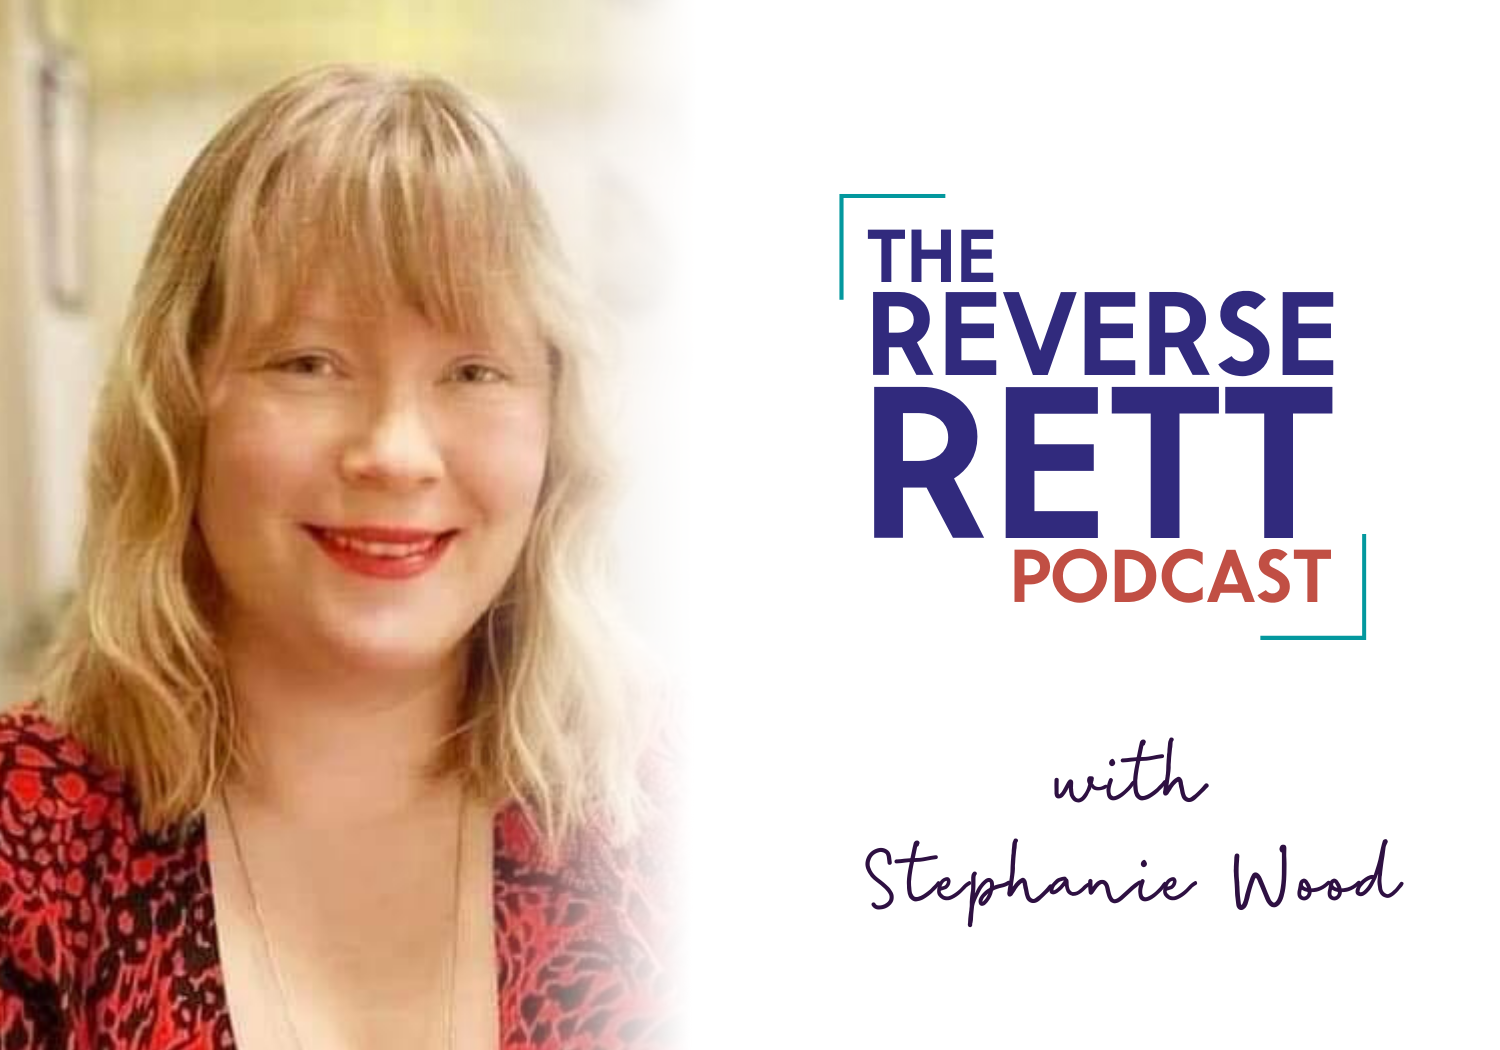 Episode #10 Steph Wood